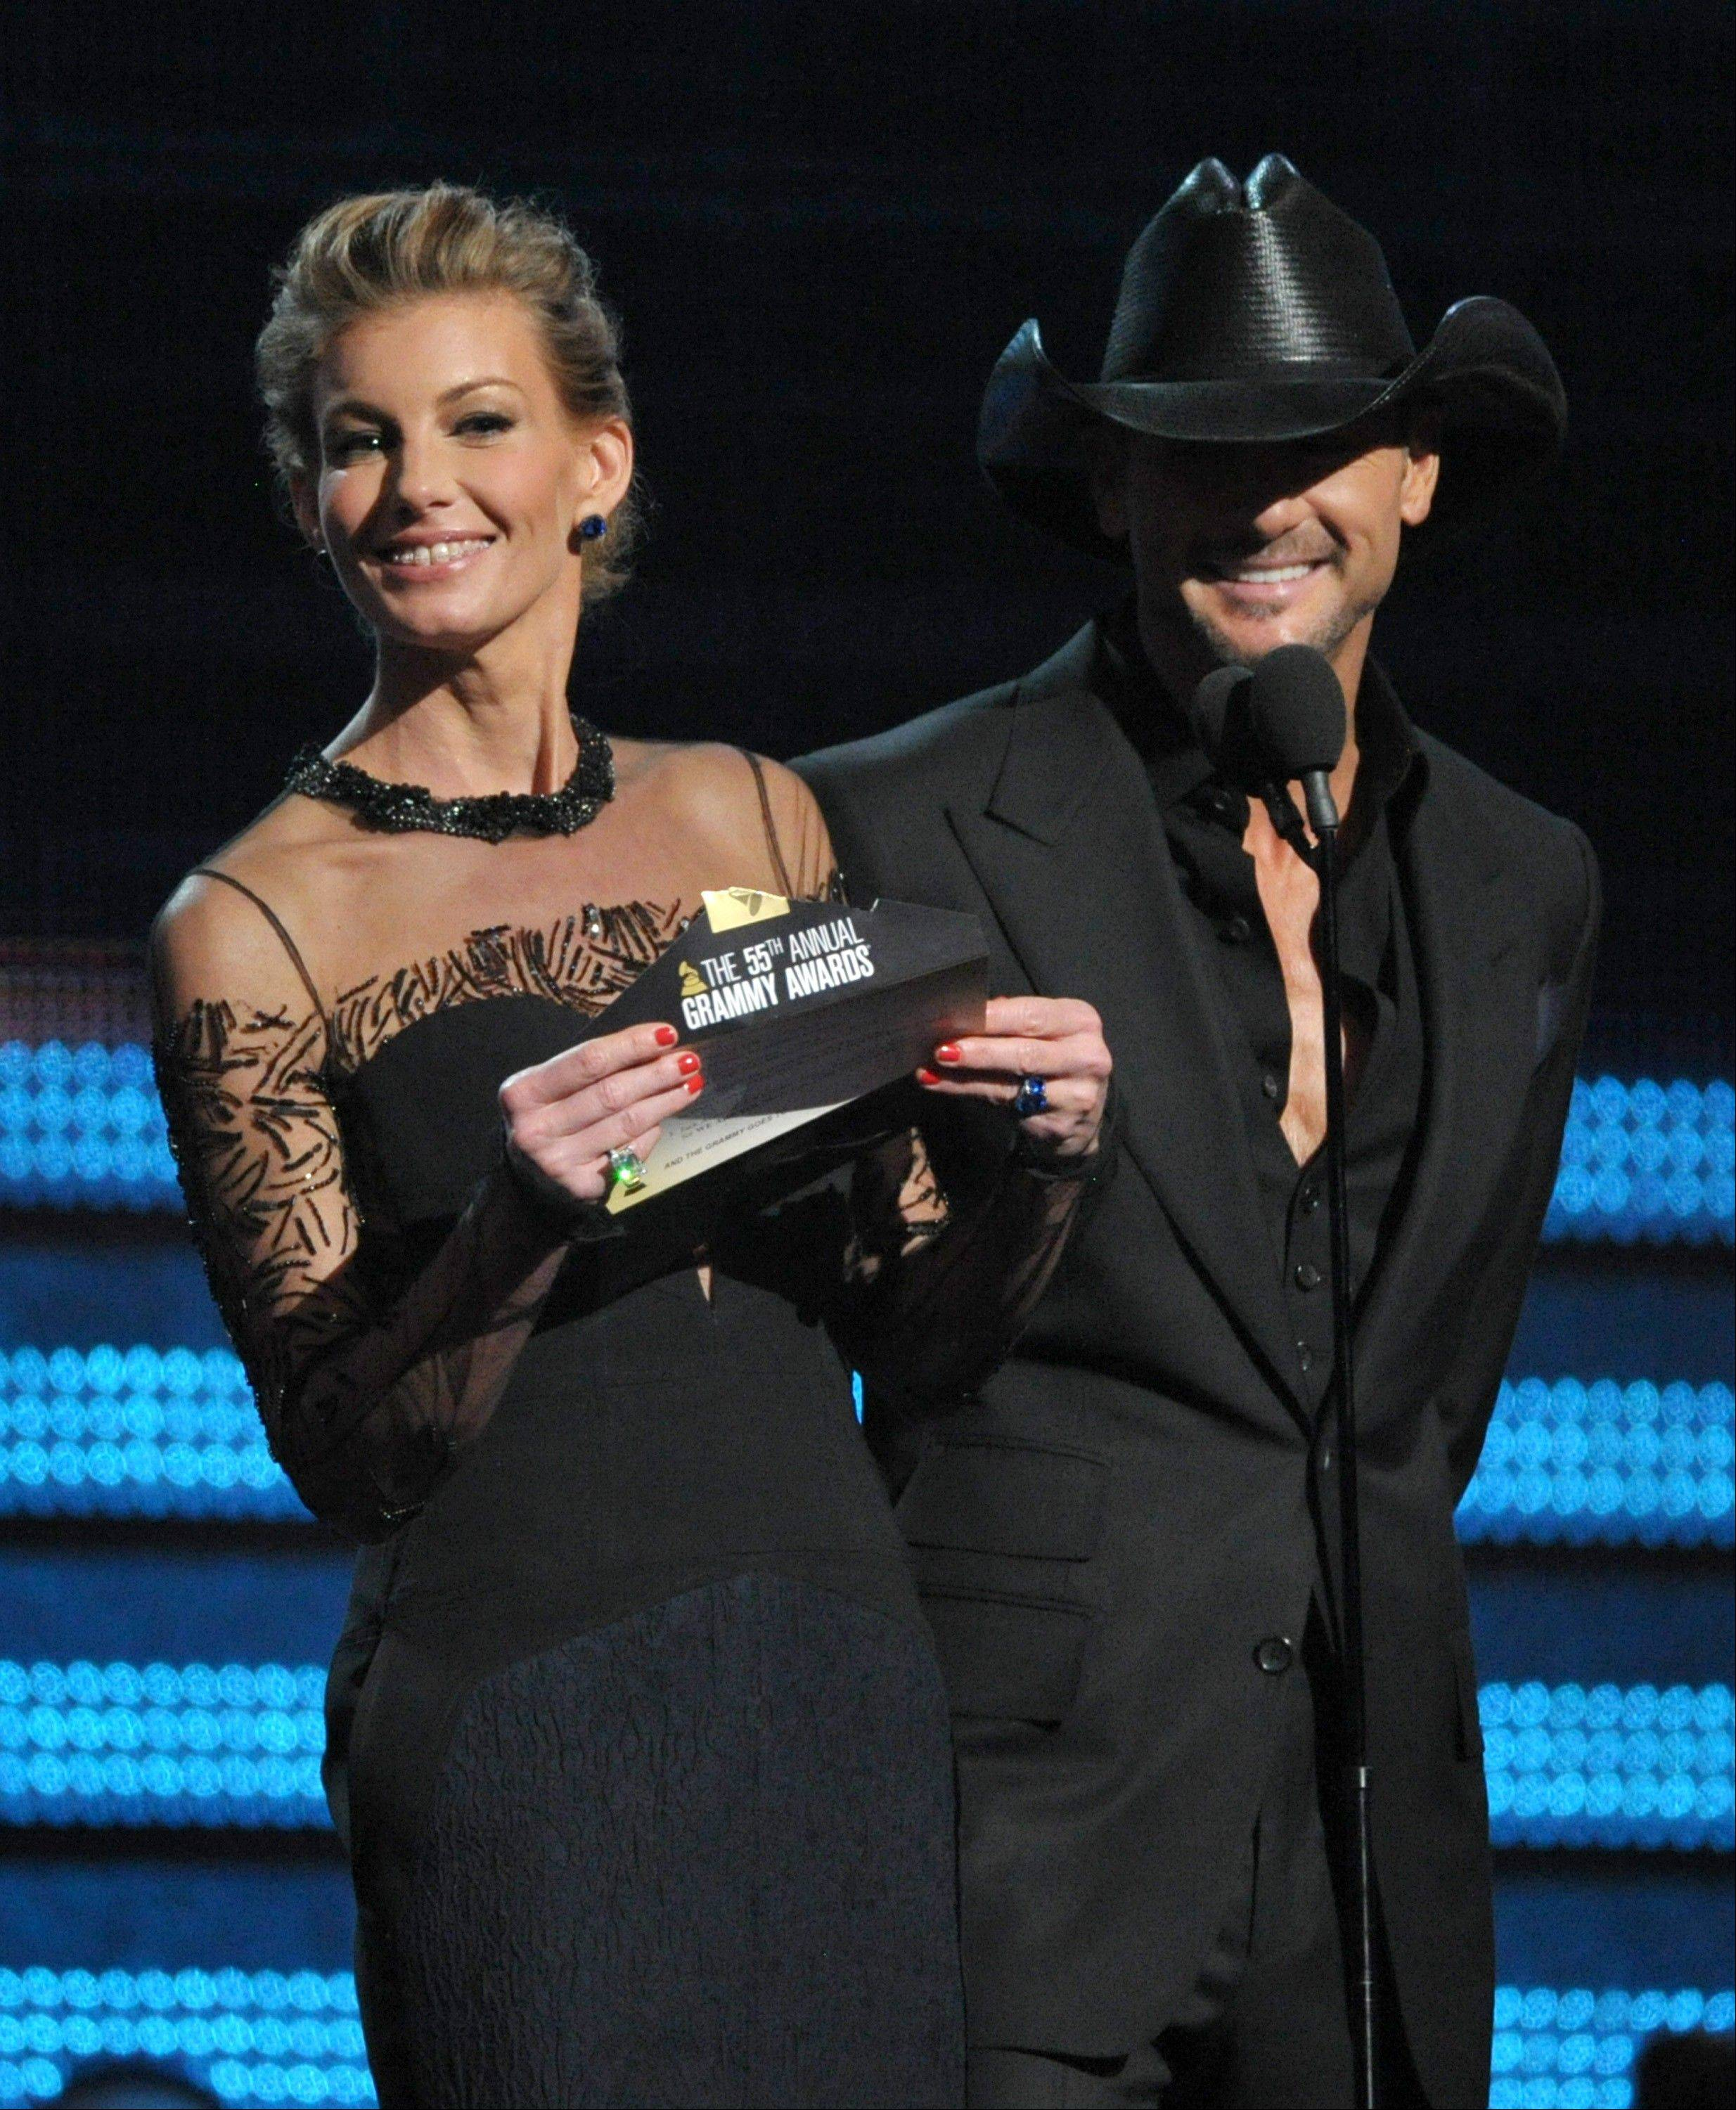 Country music stars Faith Hill and Tim McGraw present the award for song of the year at the 55th annual Grammy Awards on Sunday, Feb. 10, 2013, in Los Angeles.